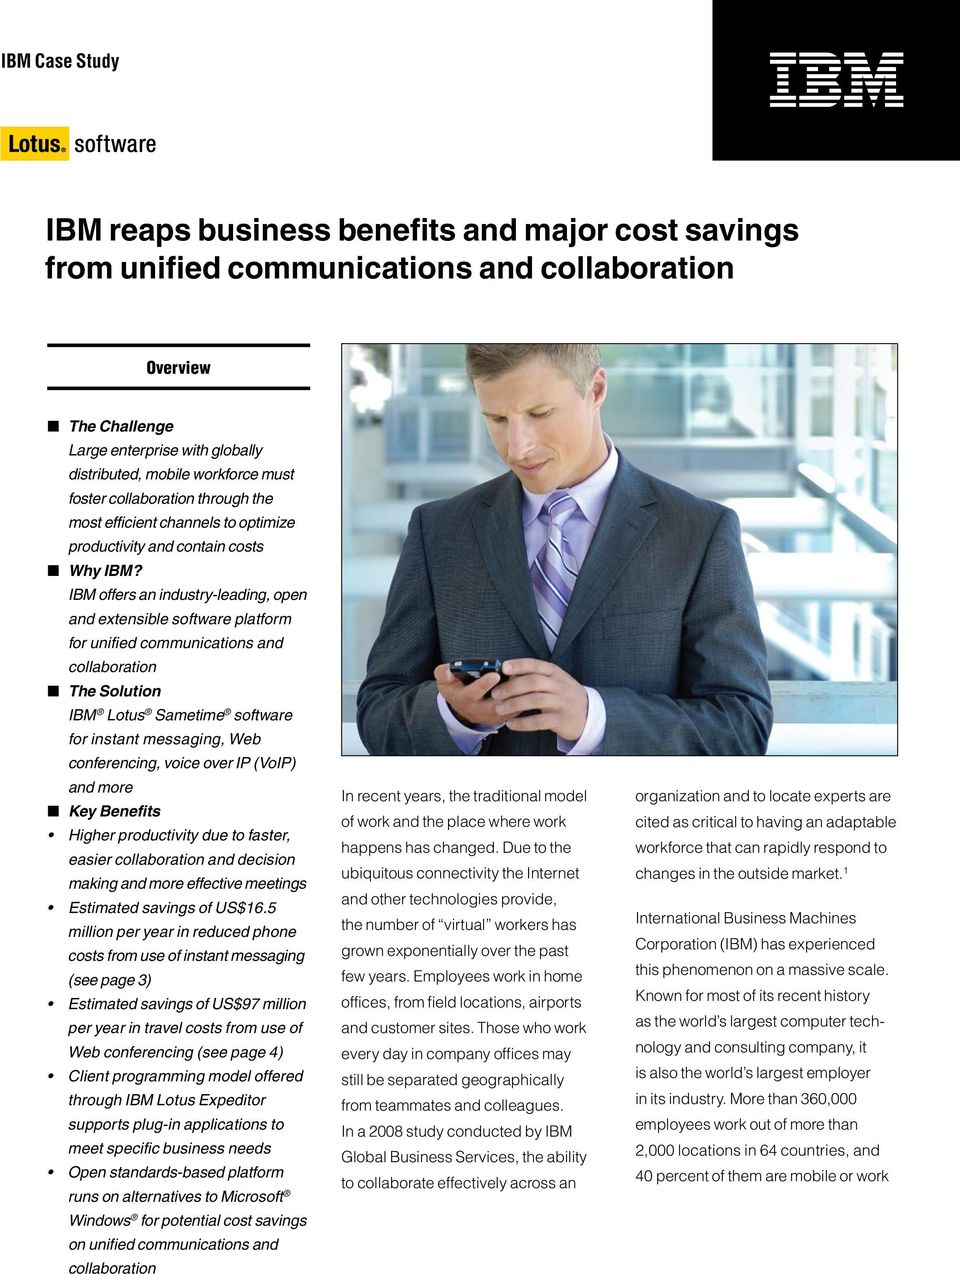 IBM offers an industry-leading, open and extensible software platform for unified communications and collaboration The Solution IBM Lotus Sametime software for instant messaging, Web conferencing,